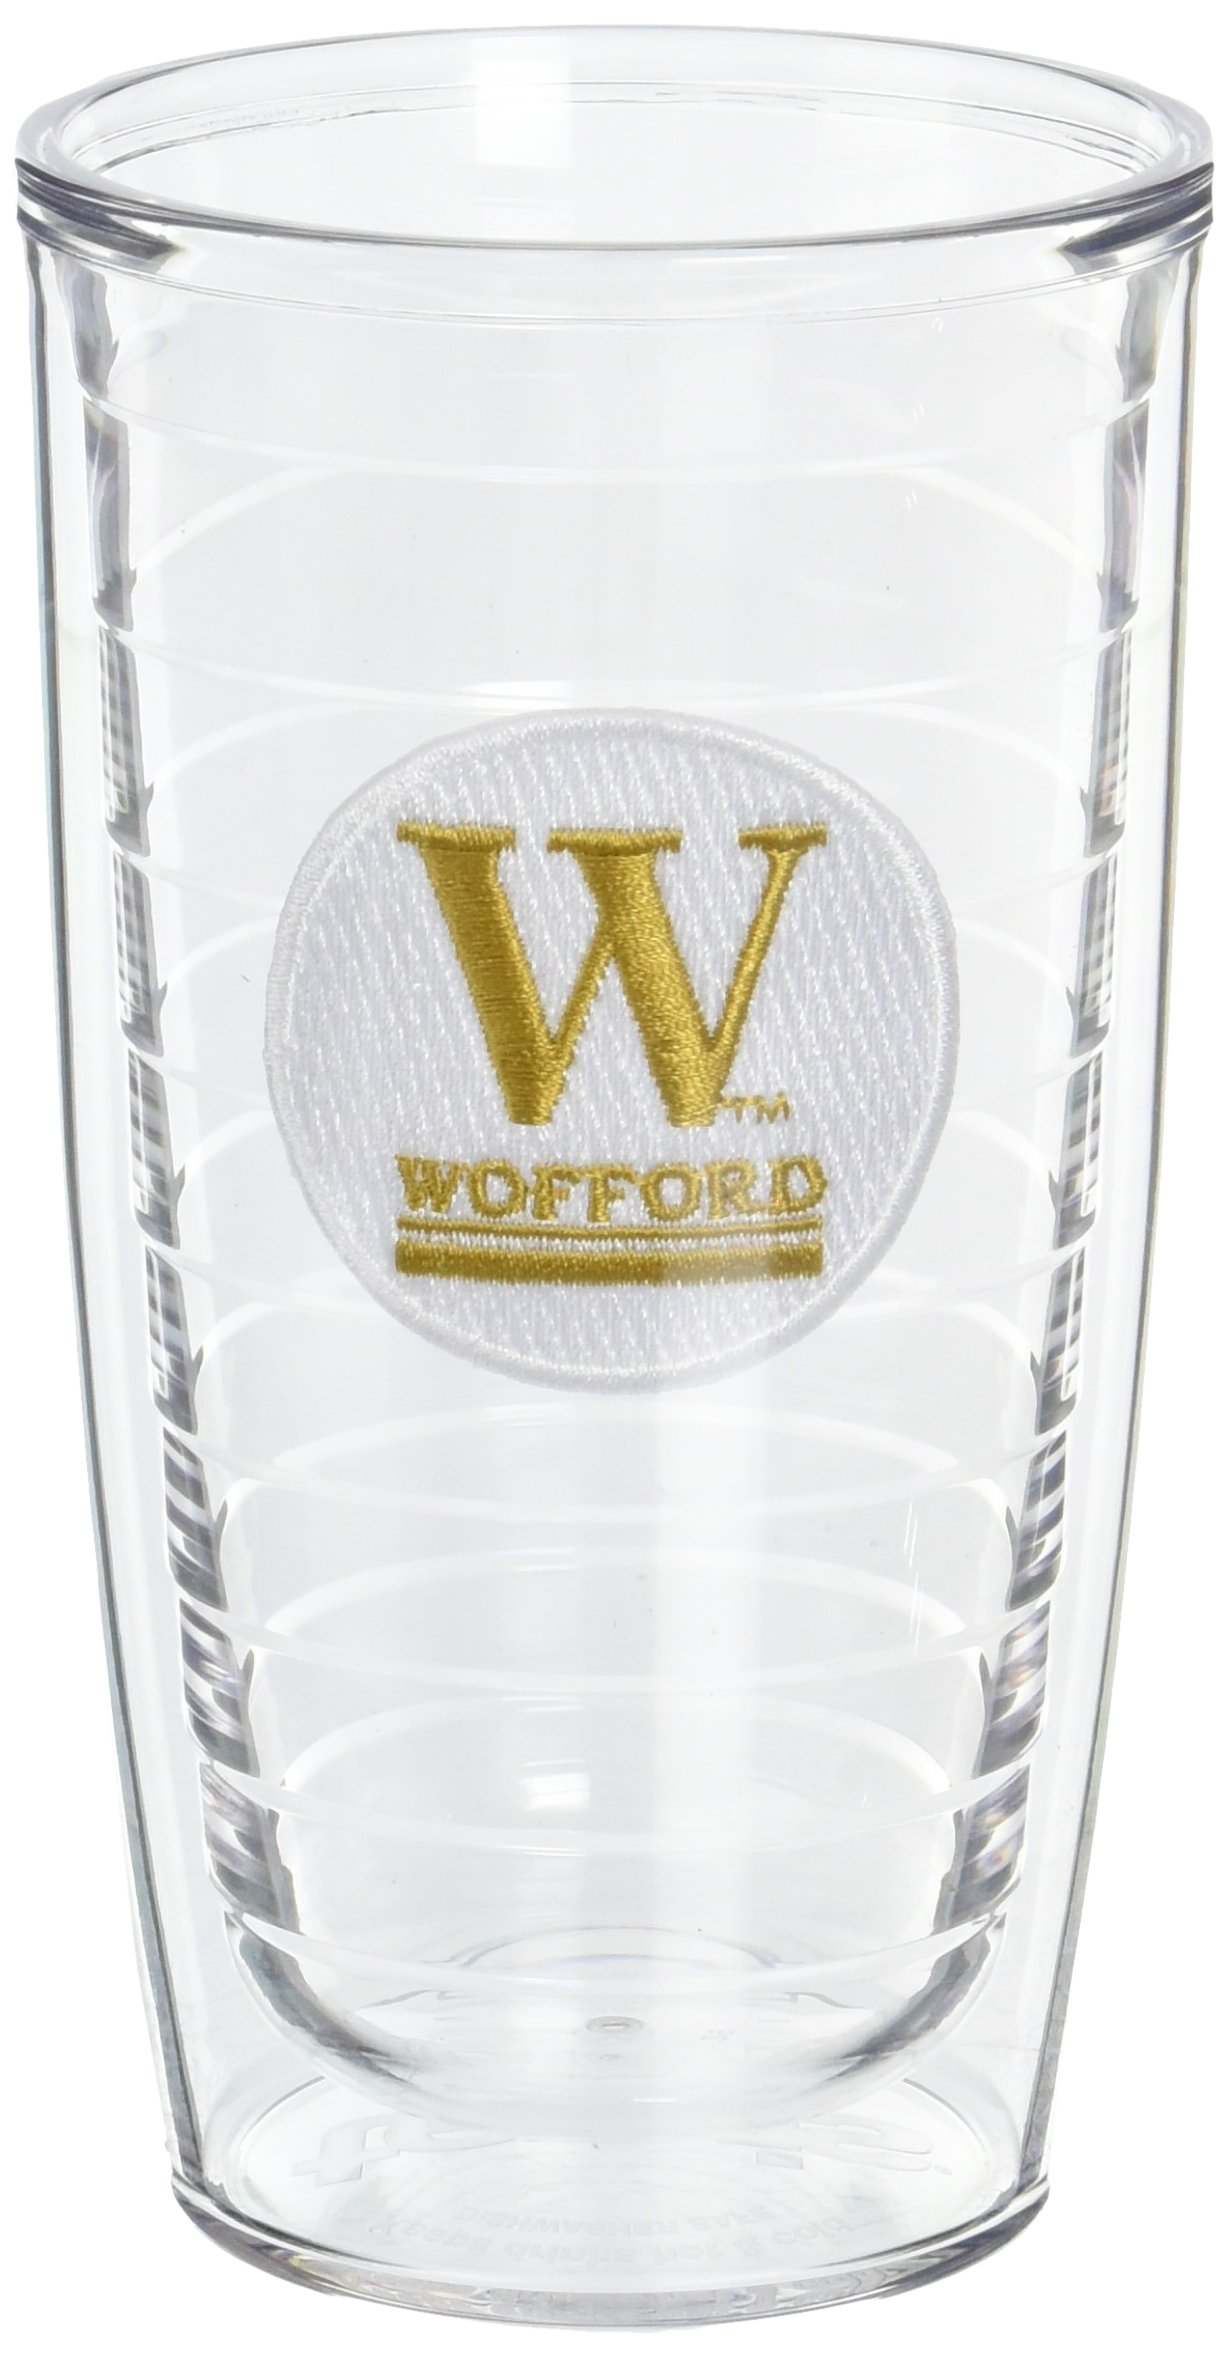 Tervis Wofford College Emblem Tumbler (Set of 2), 16 oz, Clear